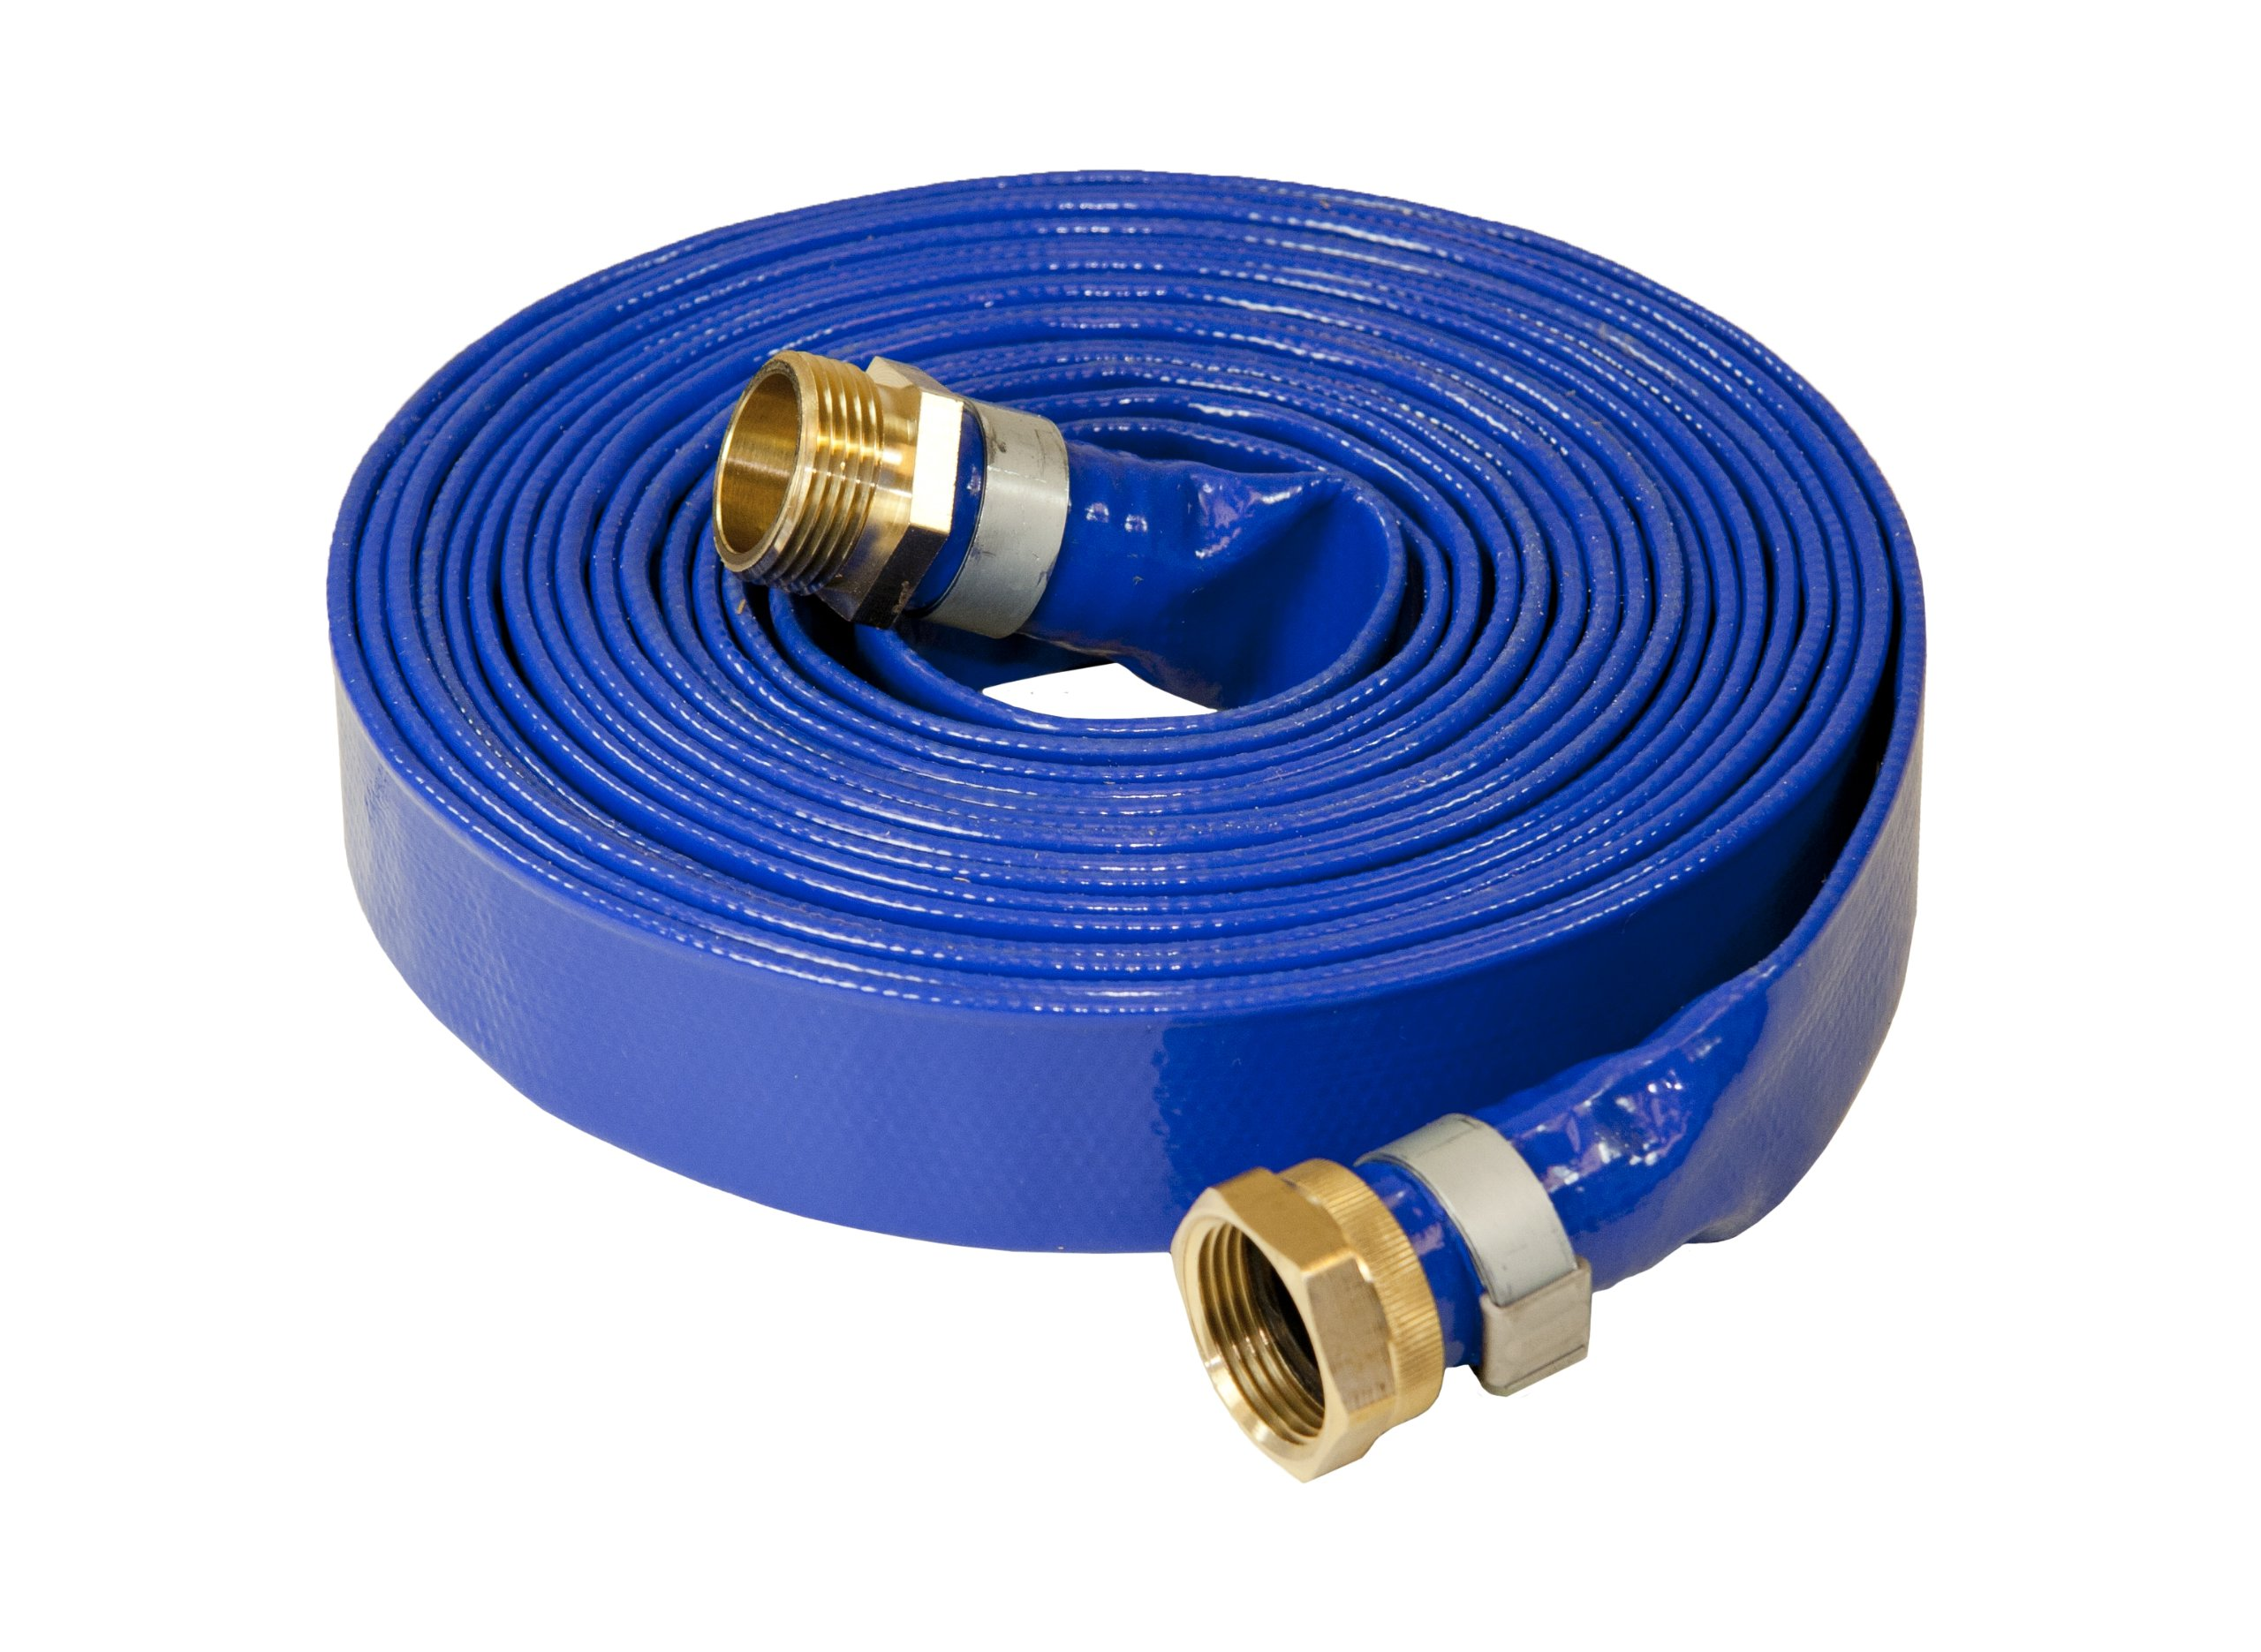 Abbott Rubber 1147-1000-25 Reinforced Blue PVC Lay Flat 1-Inch by 25-Feet Water Discharge Hose with 1-Inch Threaded Couplings by Abbott Rubber